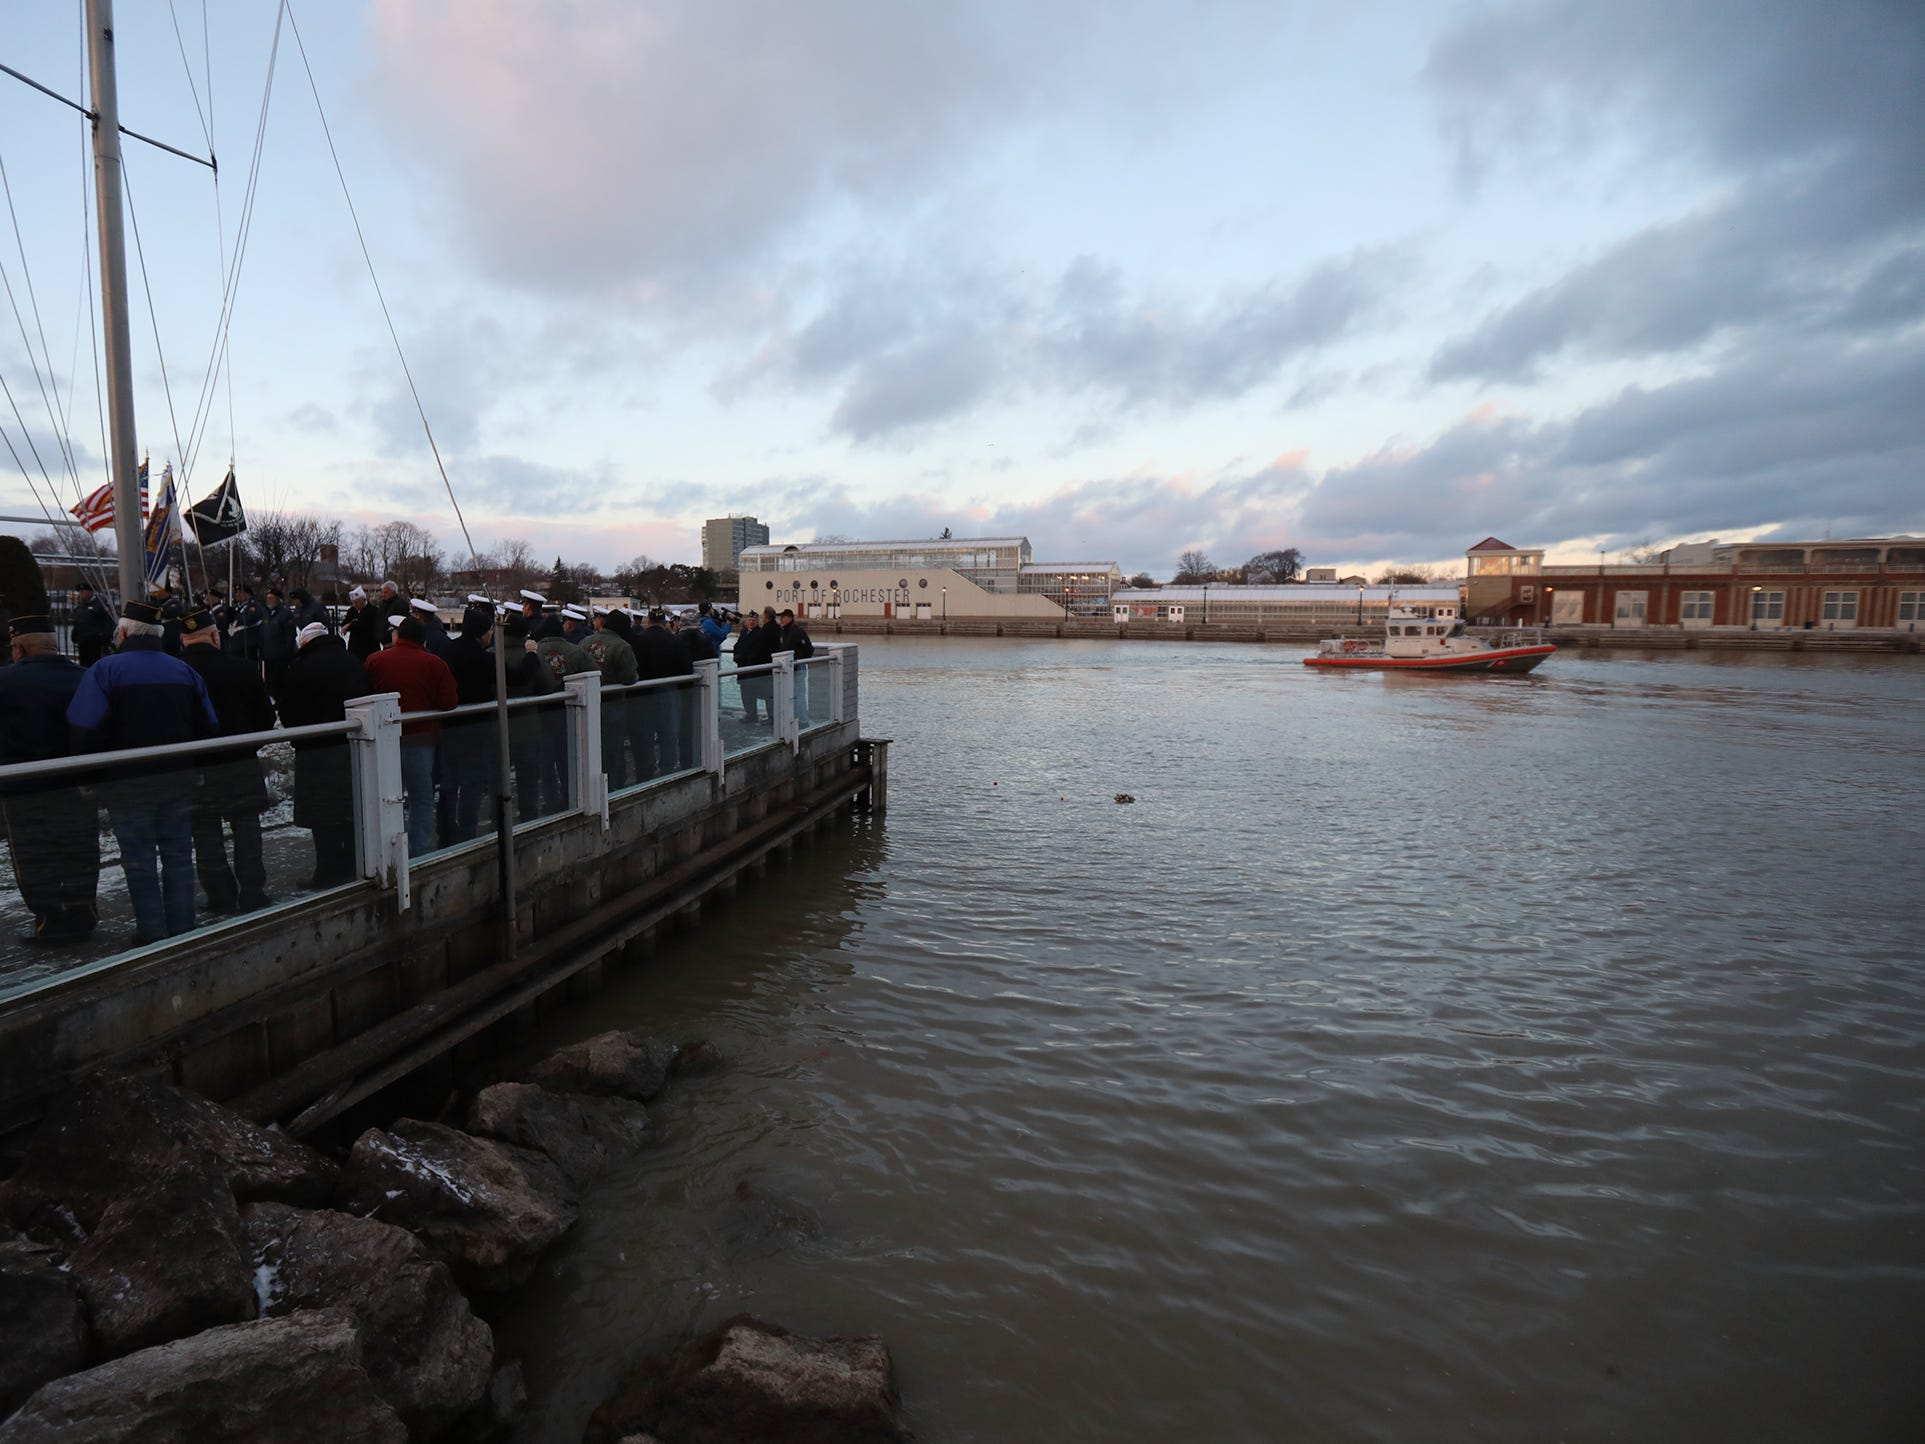 A wreath was thrown into the Genesee River to honor those who died at Pearl Harbor.